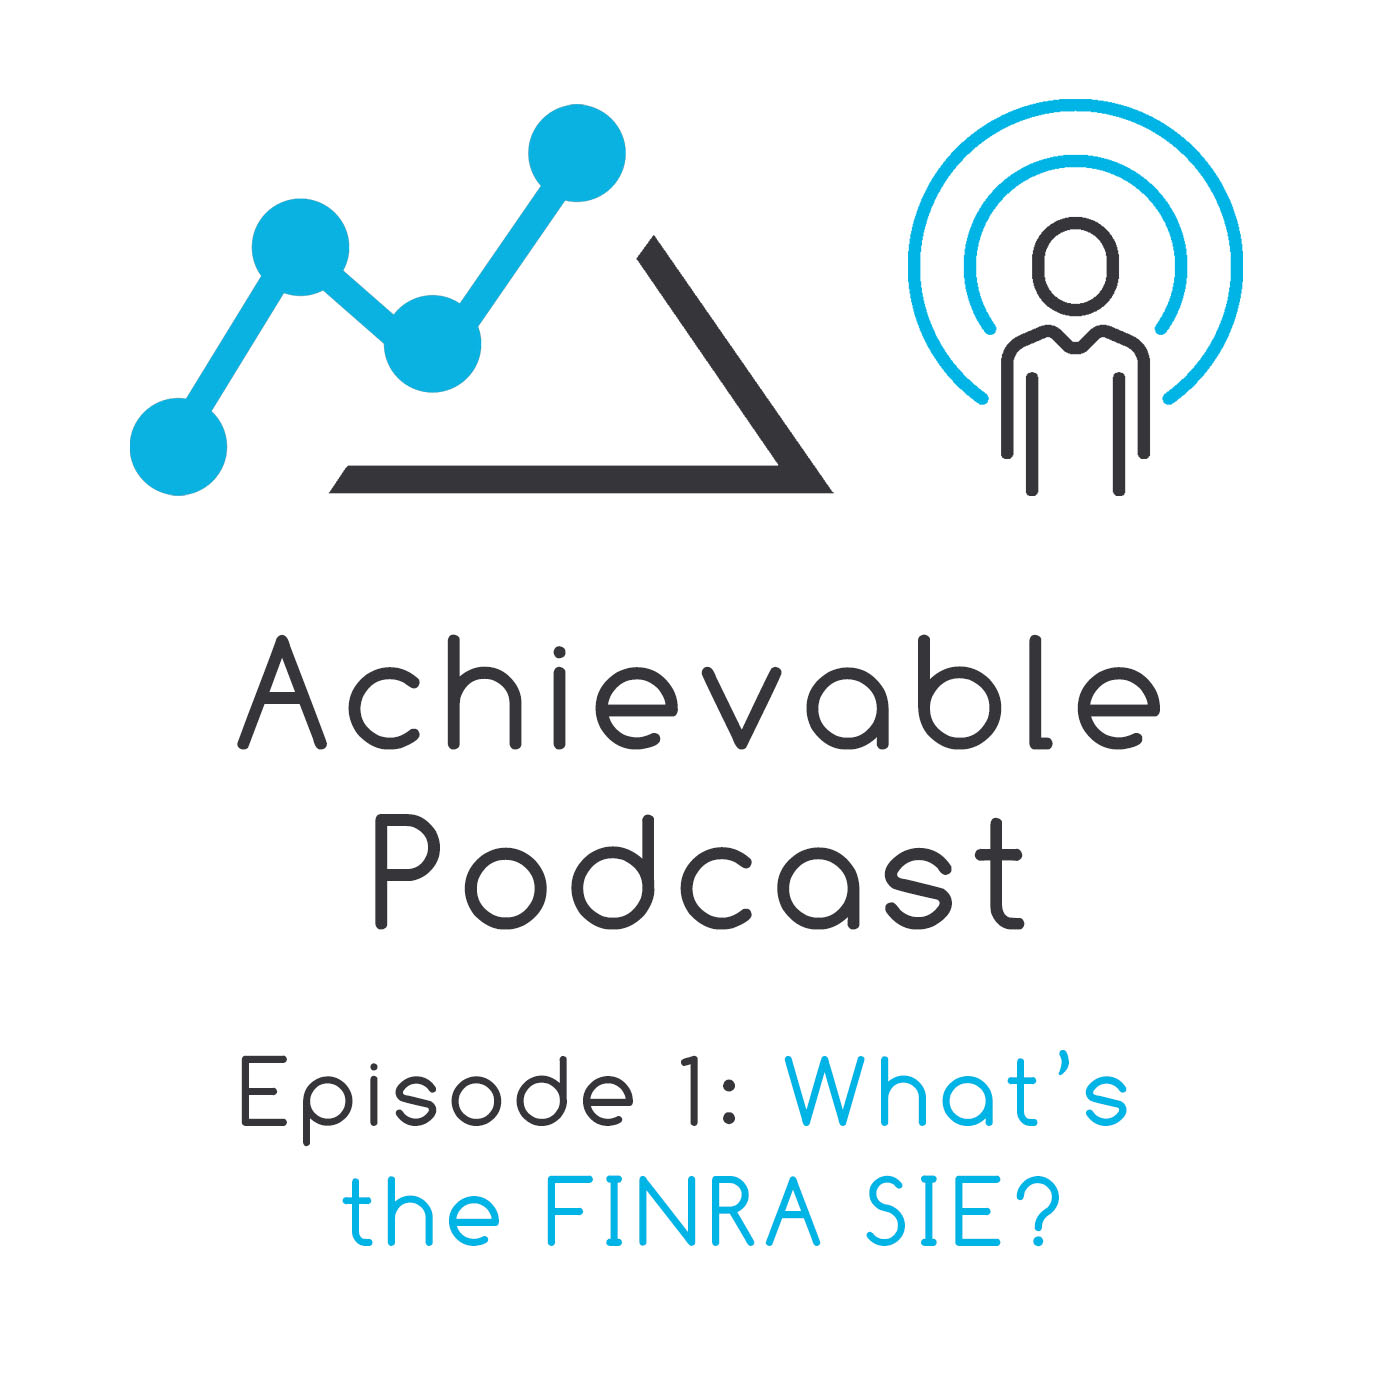 Achievable Podcast #1 - What's the FINRA SIE?